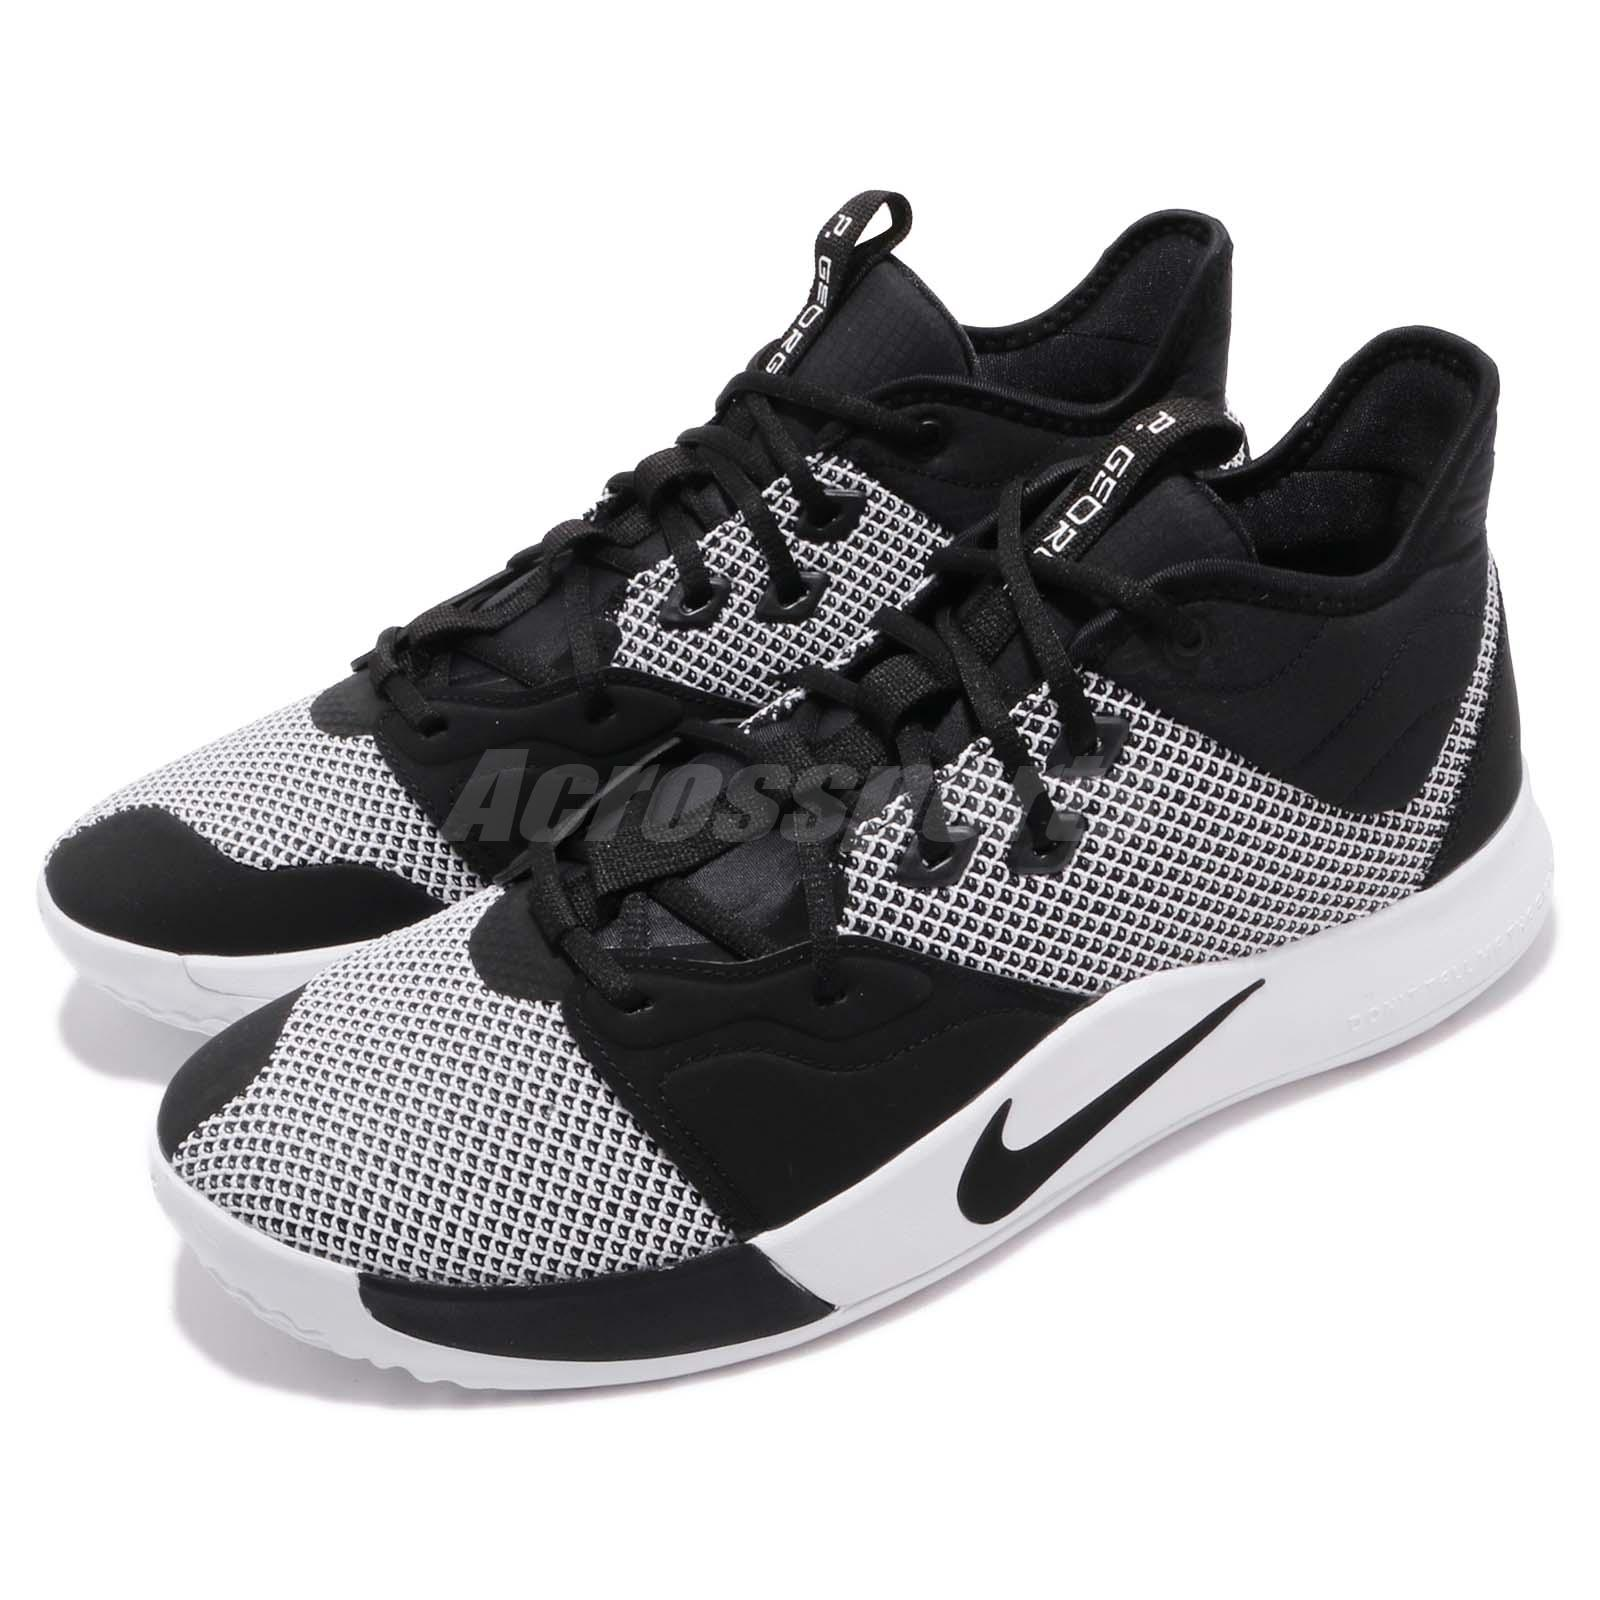 new arrival 6d29a 33ec5 Details about Nike PG 3 EP Paul George Black White Mens Basketball Shoes  Sneakers AO2608-002